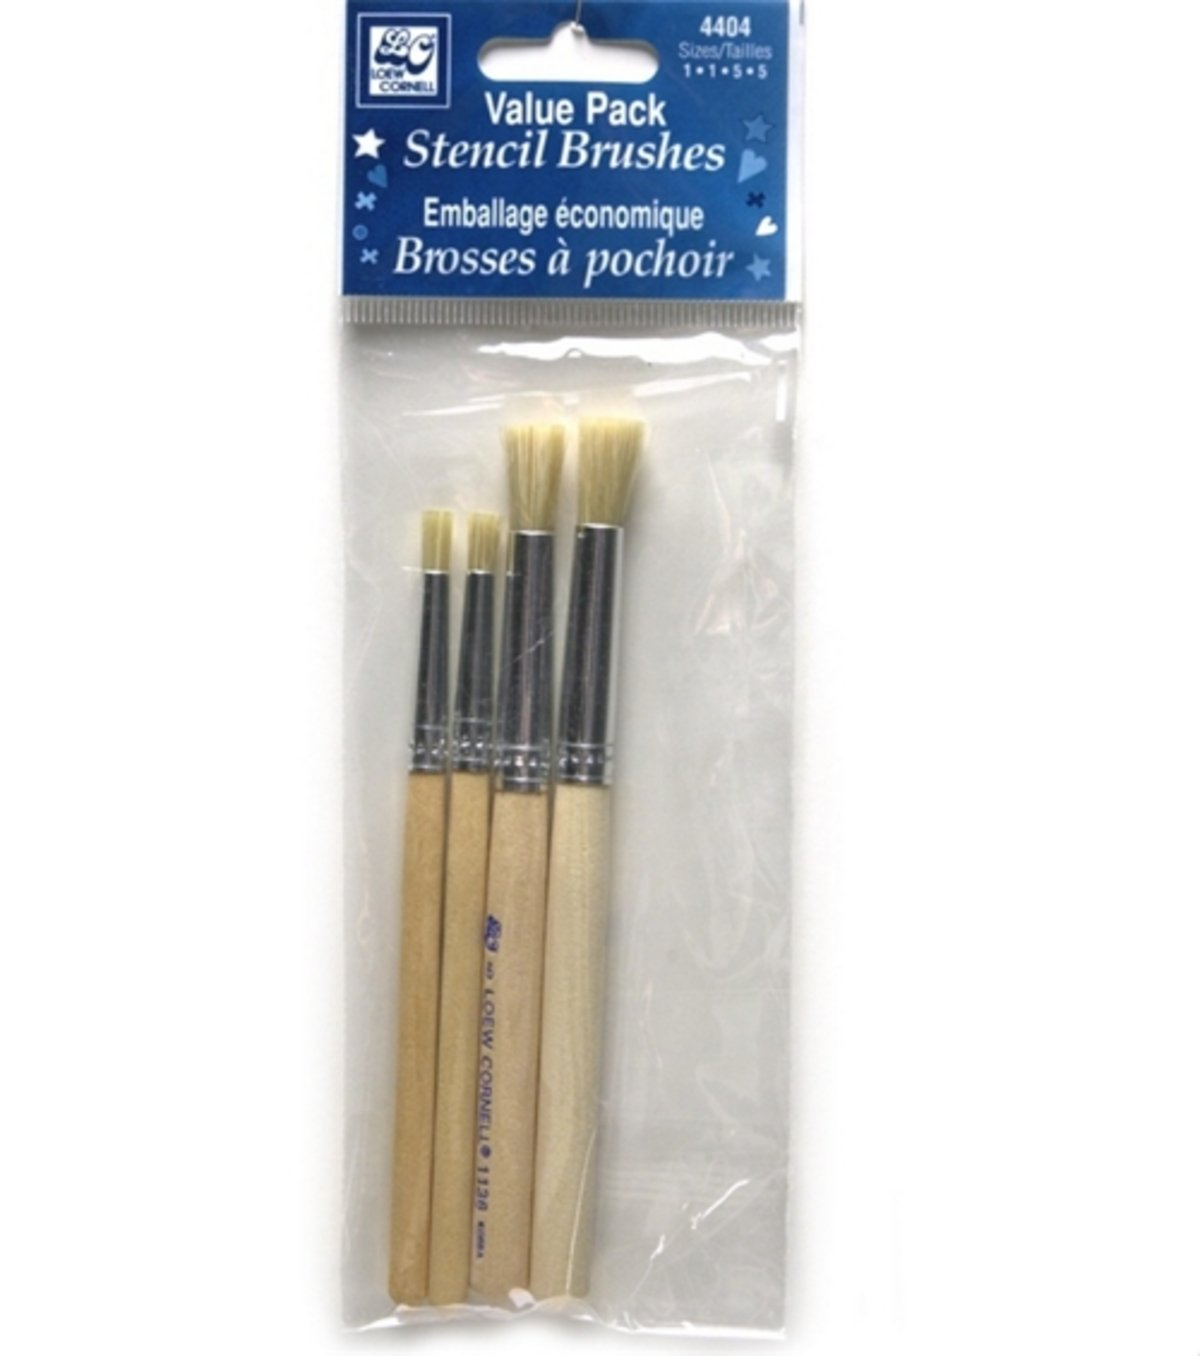 Loew-Cornell 4404 Bristle Stencil Brush Set